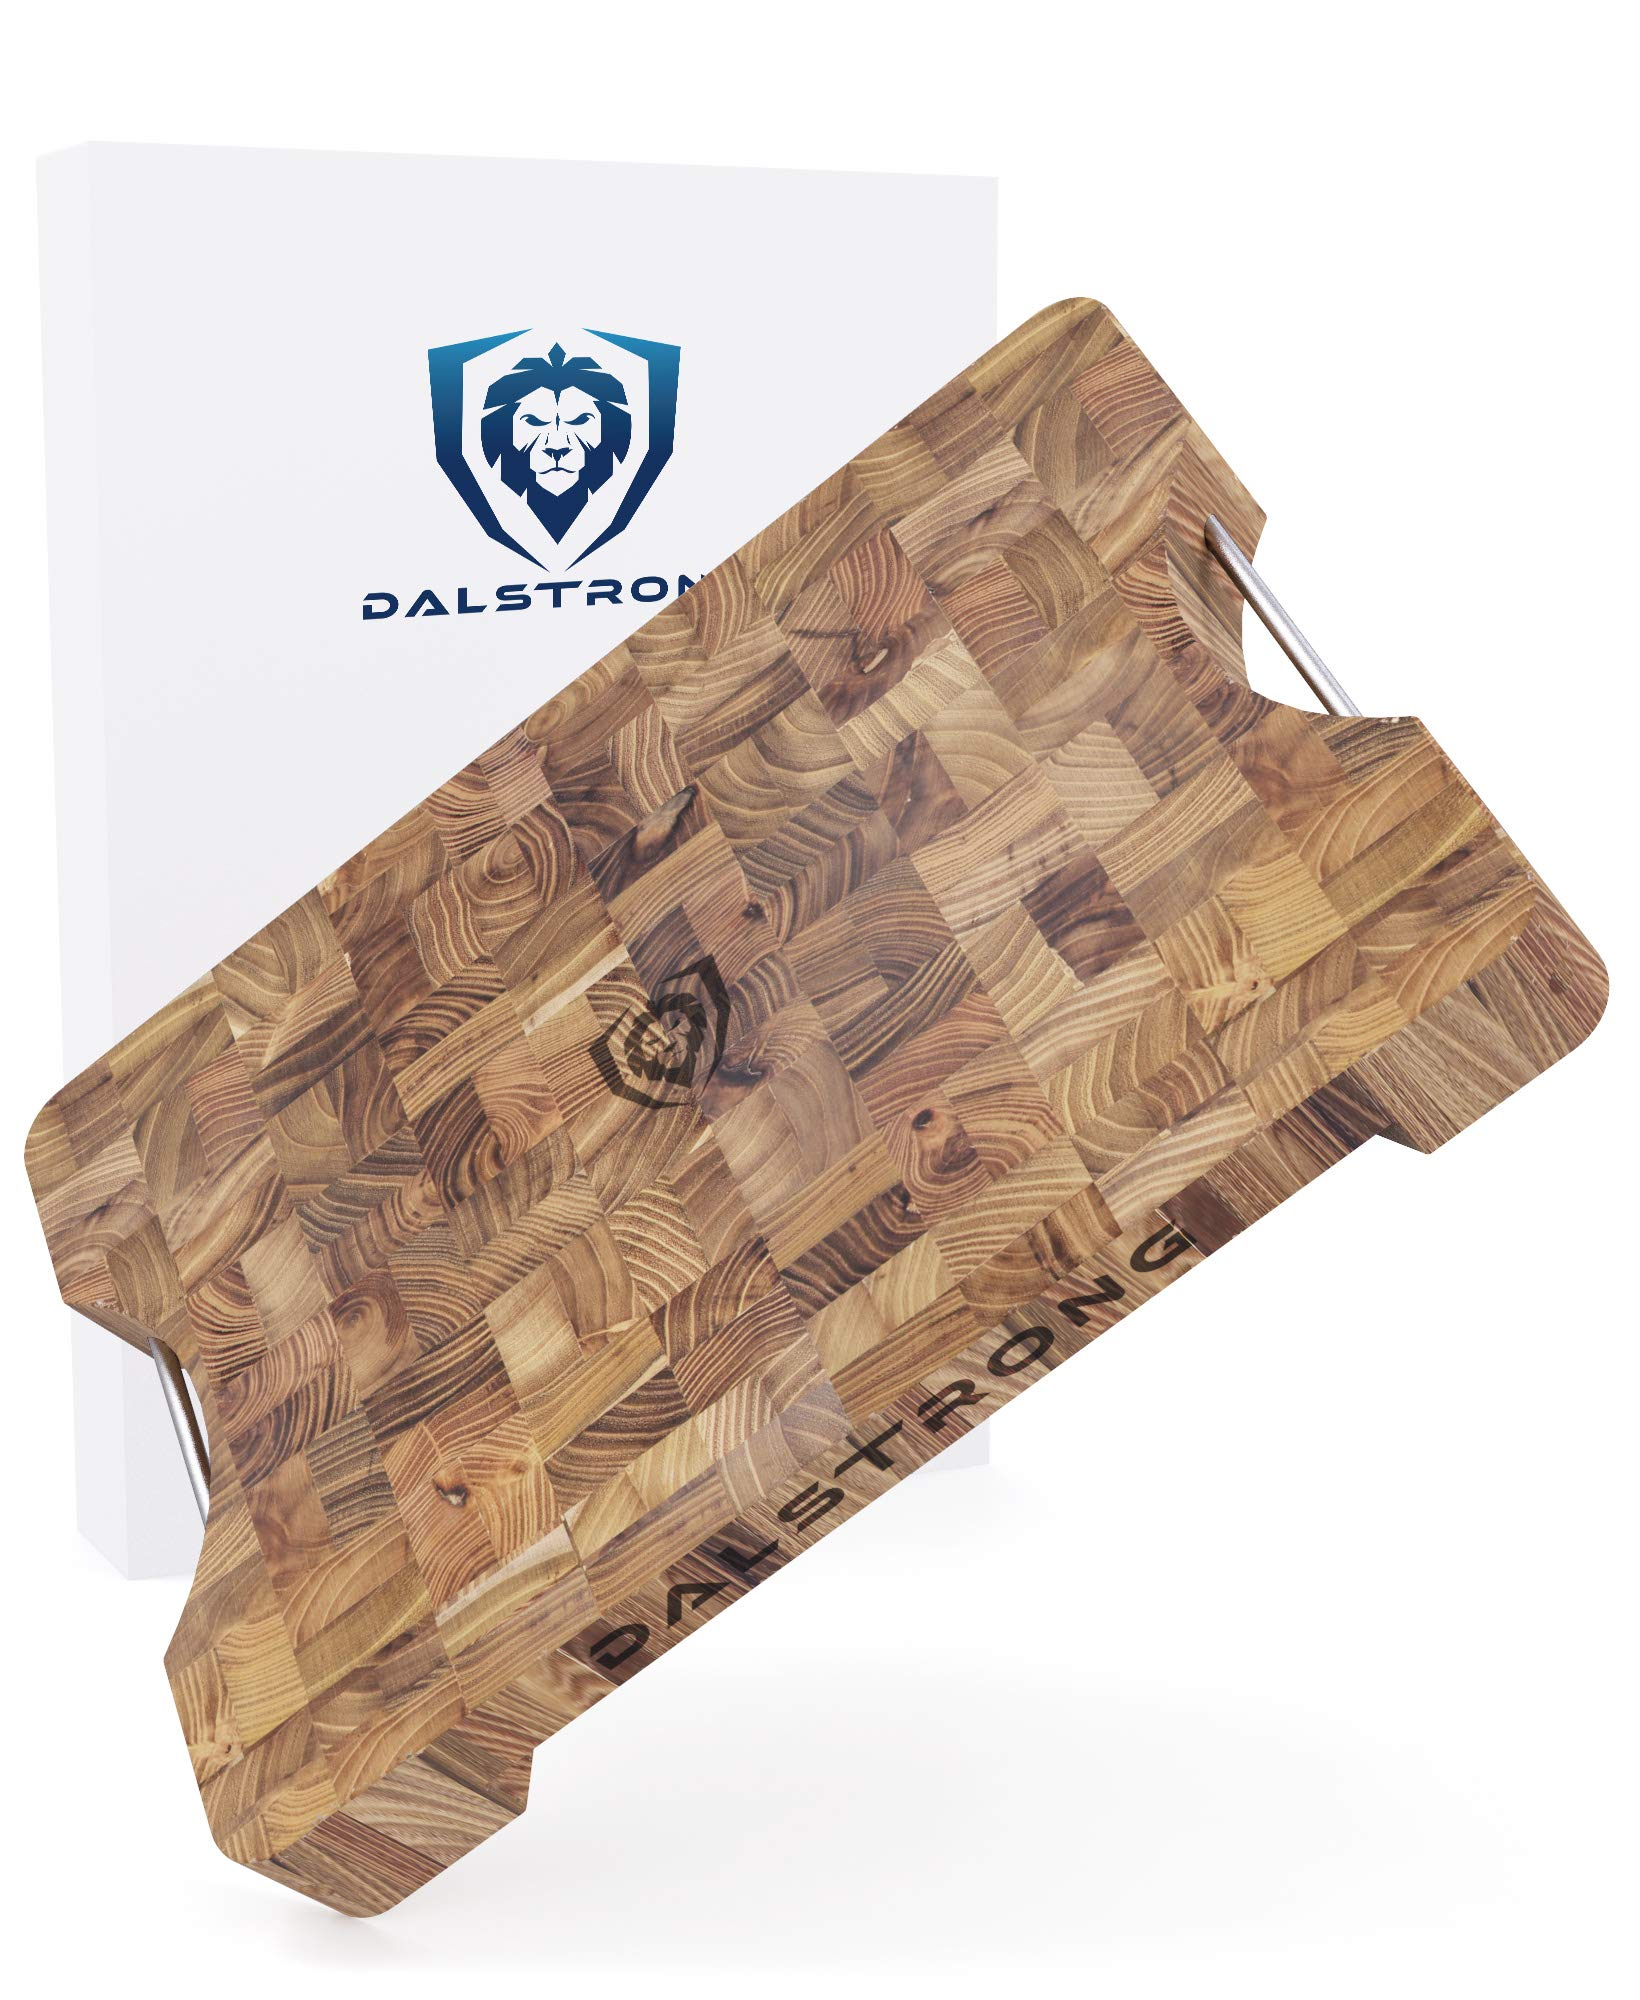 DALSTRONG Lionswood End-Grain Teak Cutting Board - Large - w/Steel Carrying Handles by Dalstrong (Image #1)